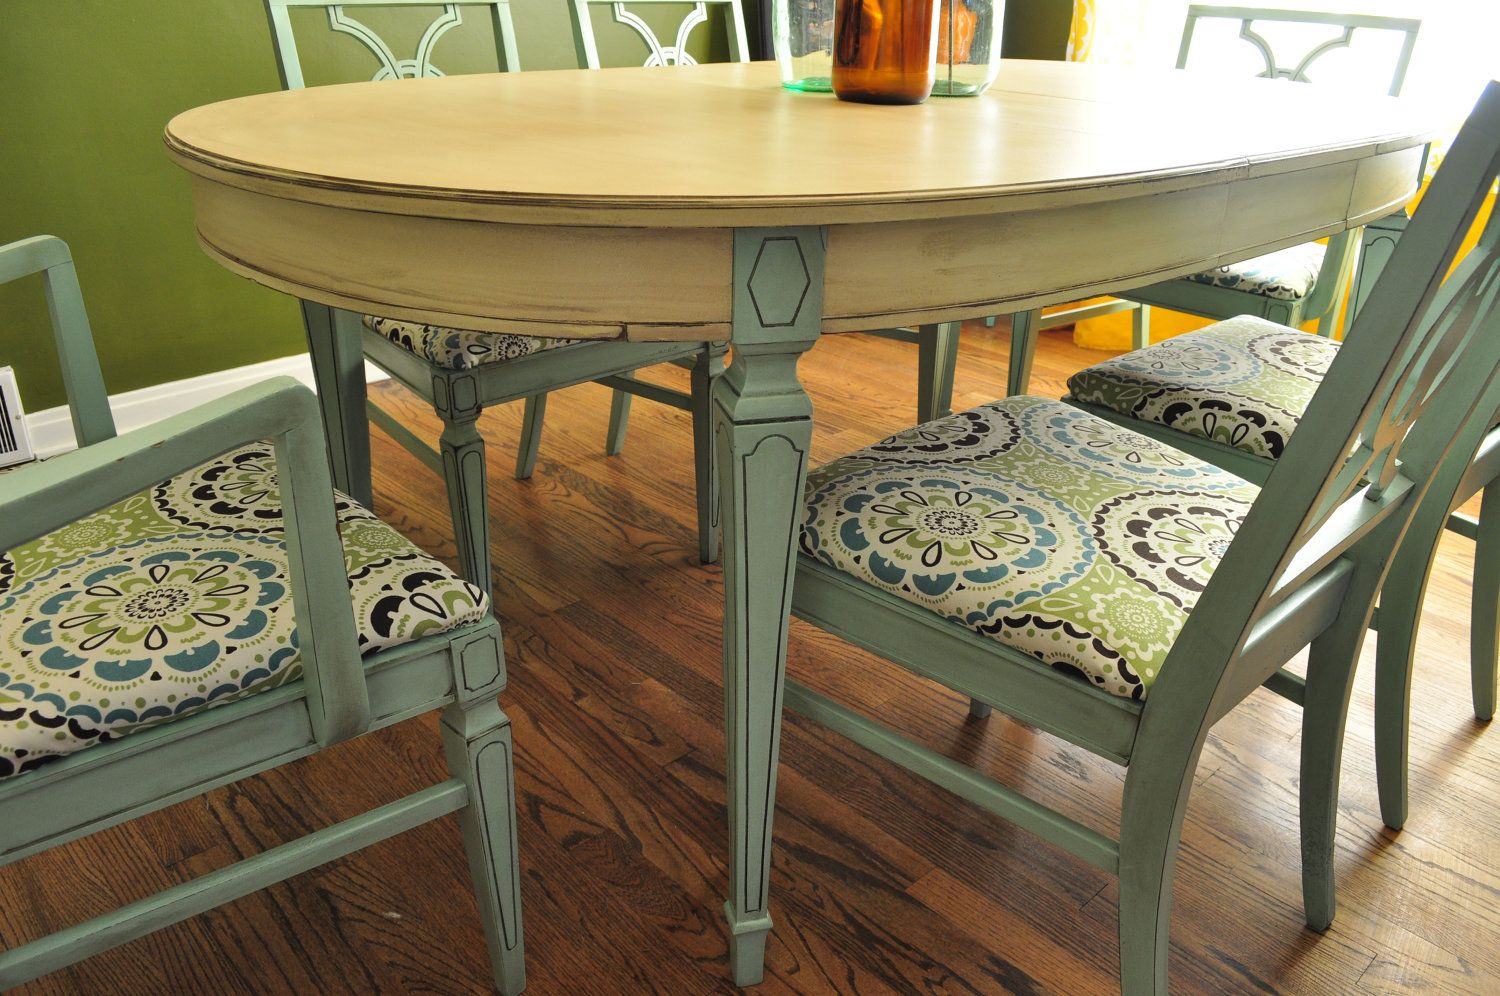 Tutorial Grey Painted Dining Table And ChairsI Like The Idea Need To Update My Old Set Possibly A Different Color Than Bluish But